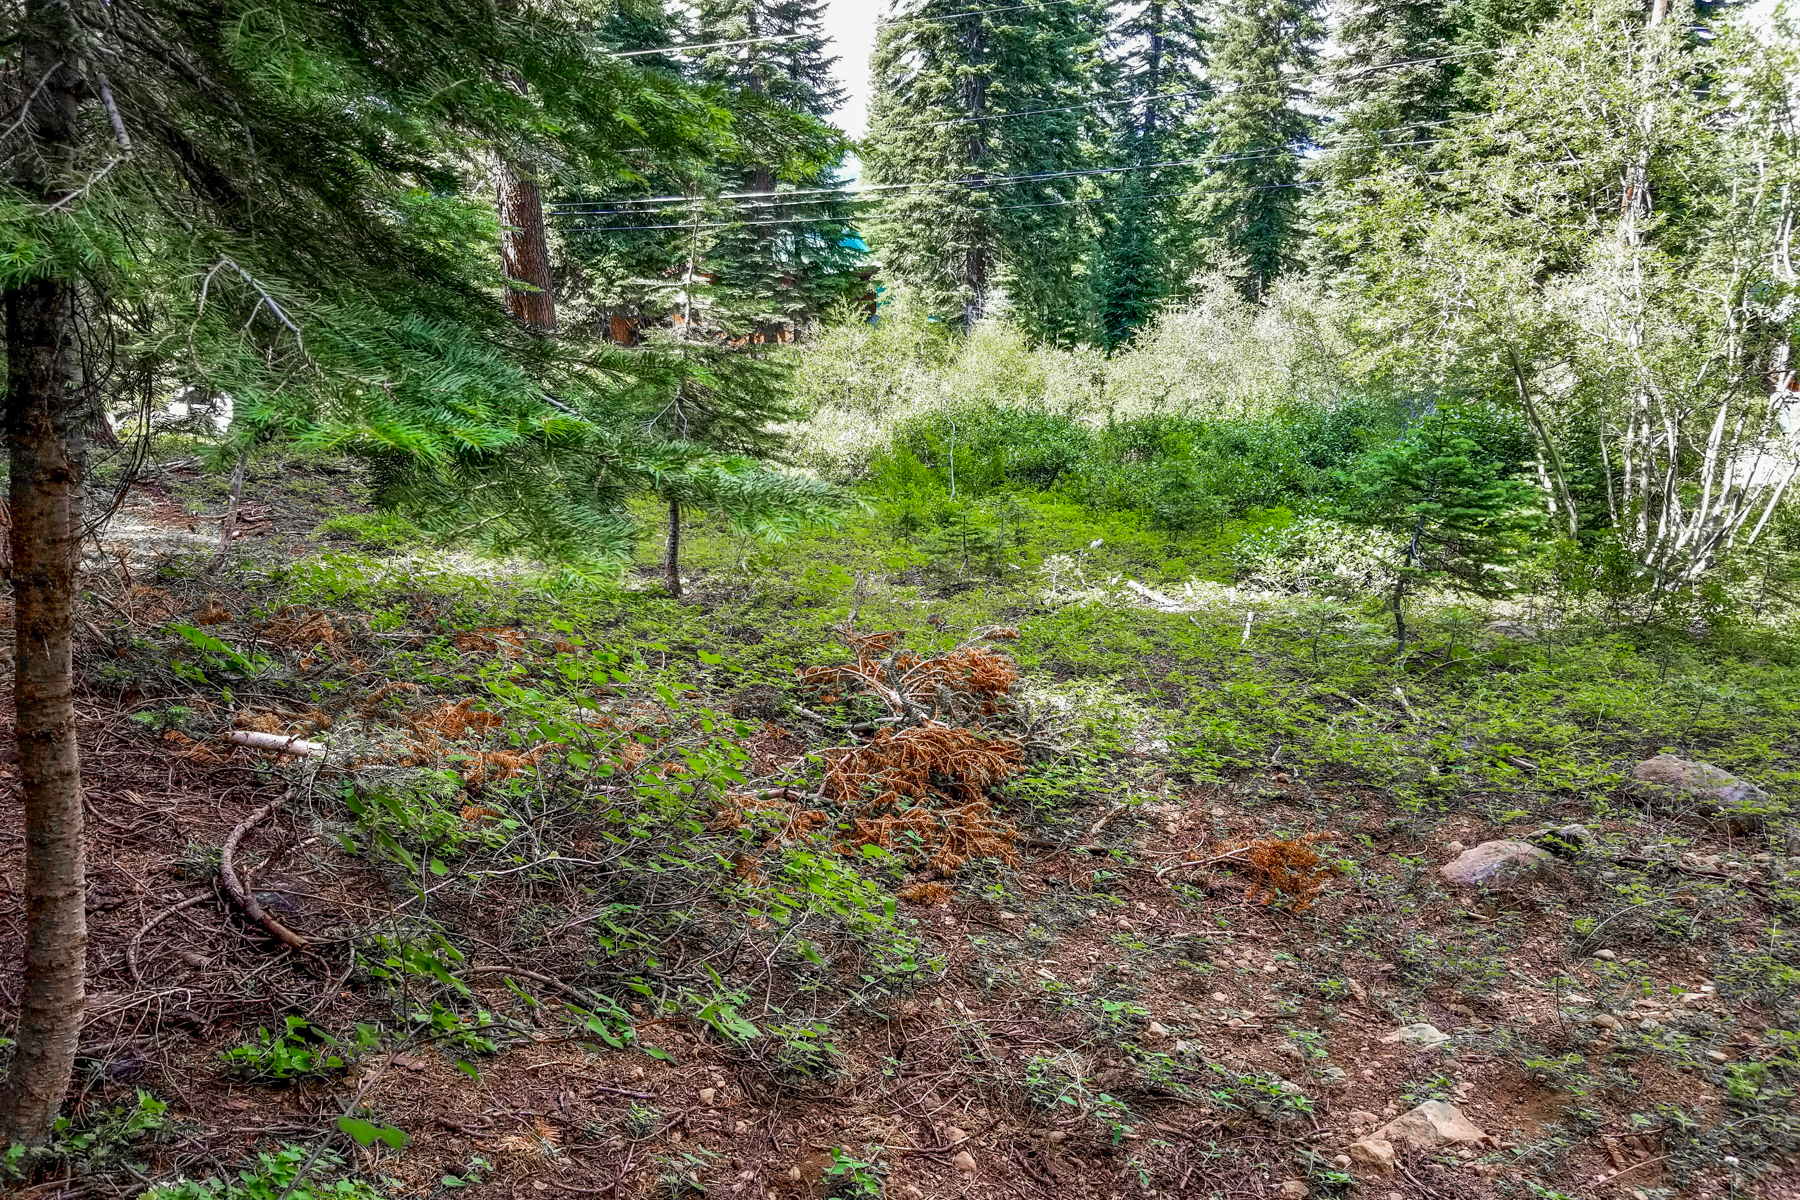 Additional photo for property listing at 14225 Herringbone Way, Truckee, CA 14225 Herringbone Way Truckee, California 96161 United States